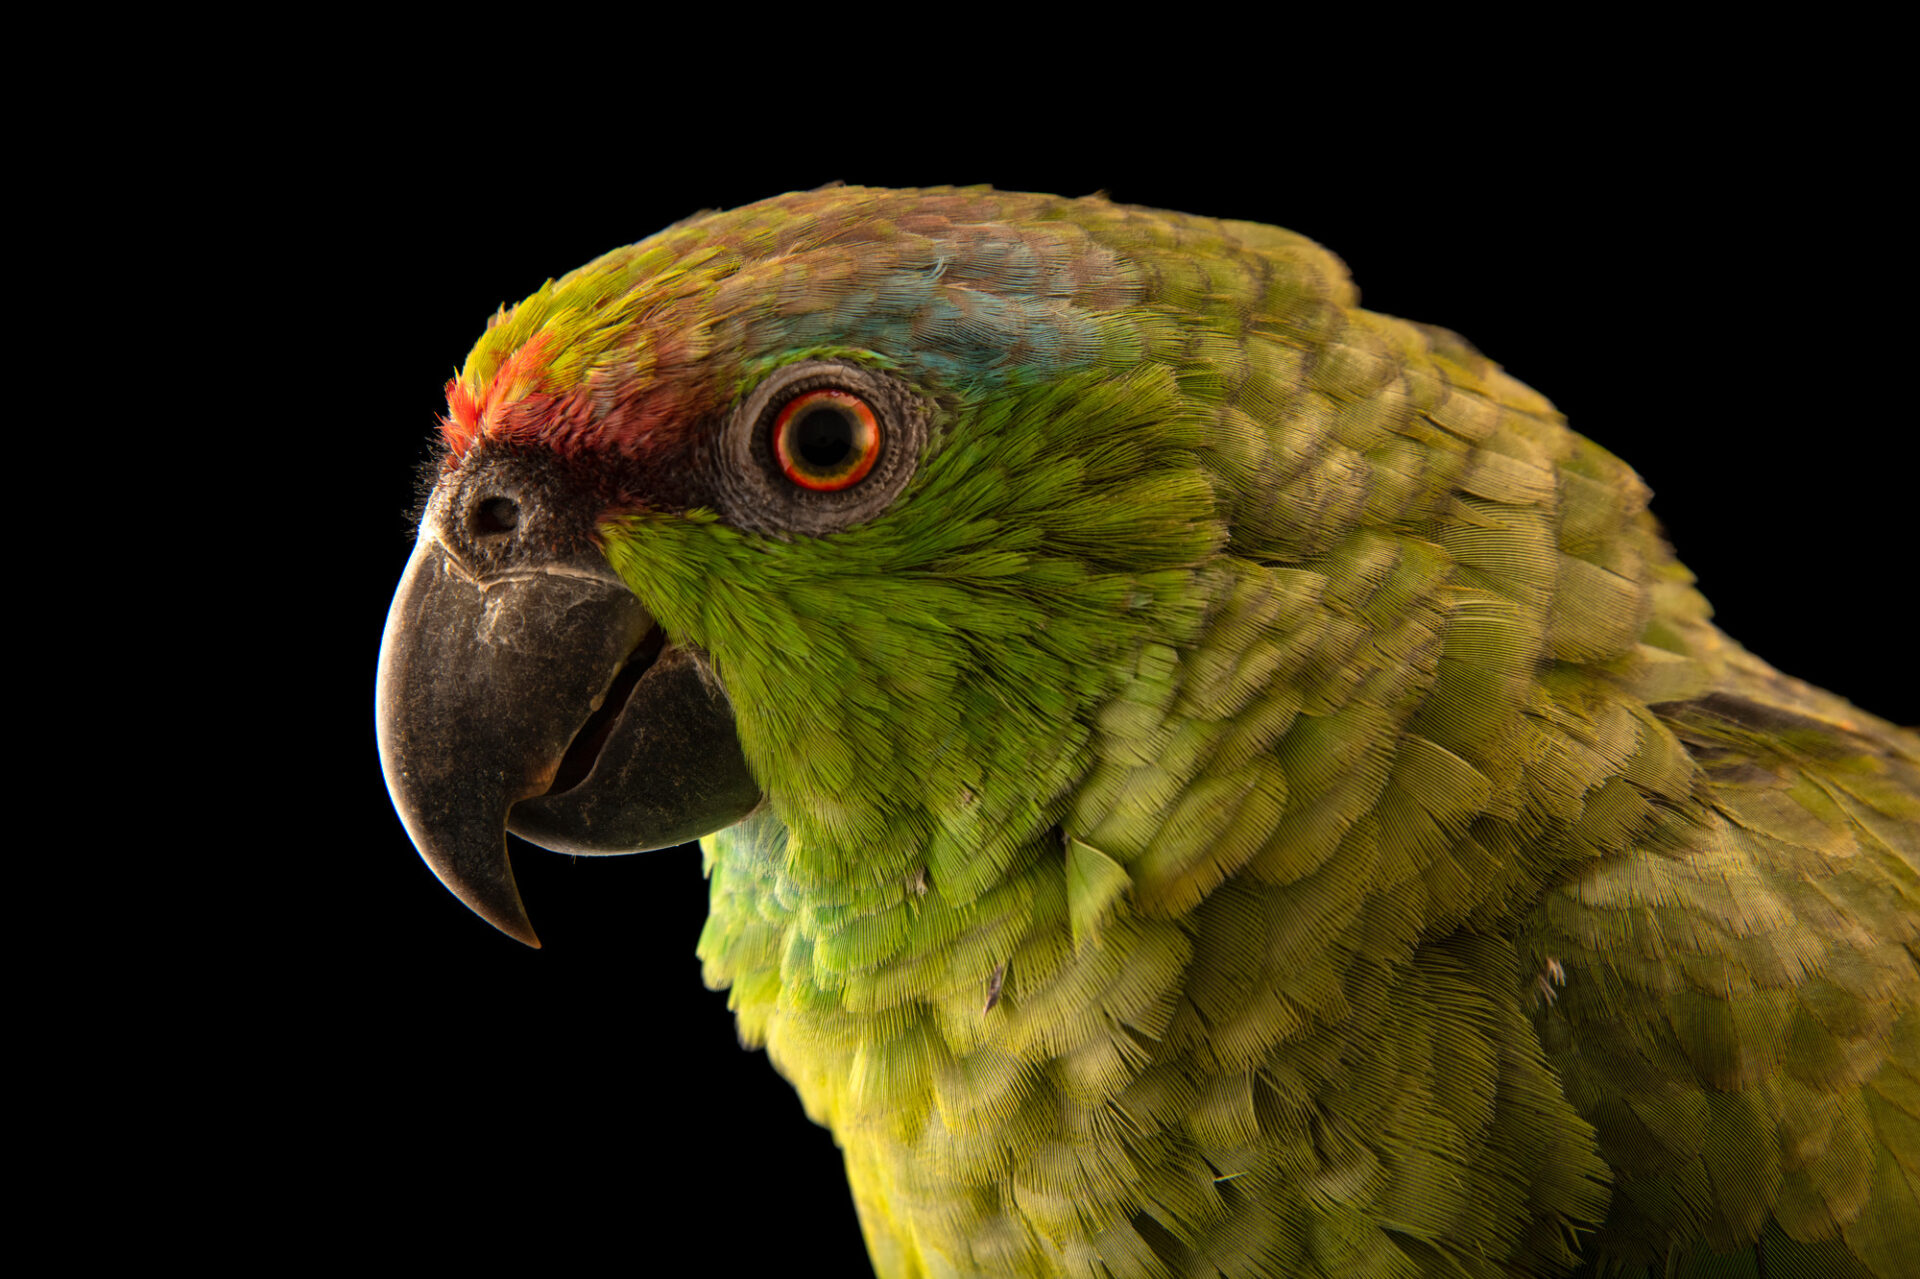 Photo: A festive Amazon parrot (Amazona festiva) at Cetas-IBAMA, a wildlife rehab center in Manaus, Brazil.